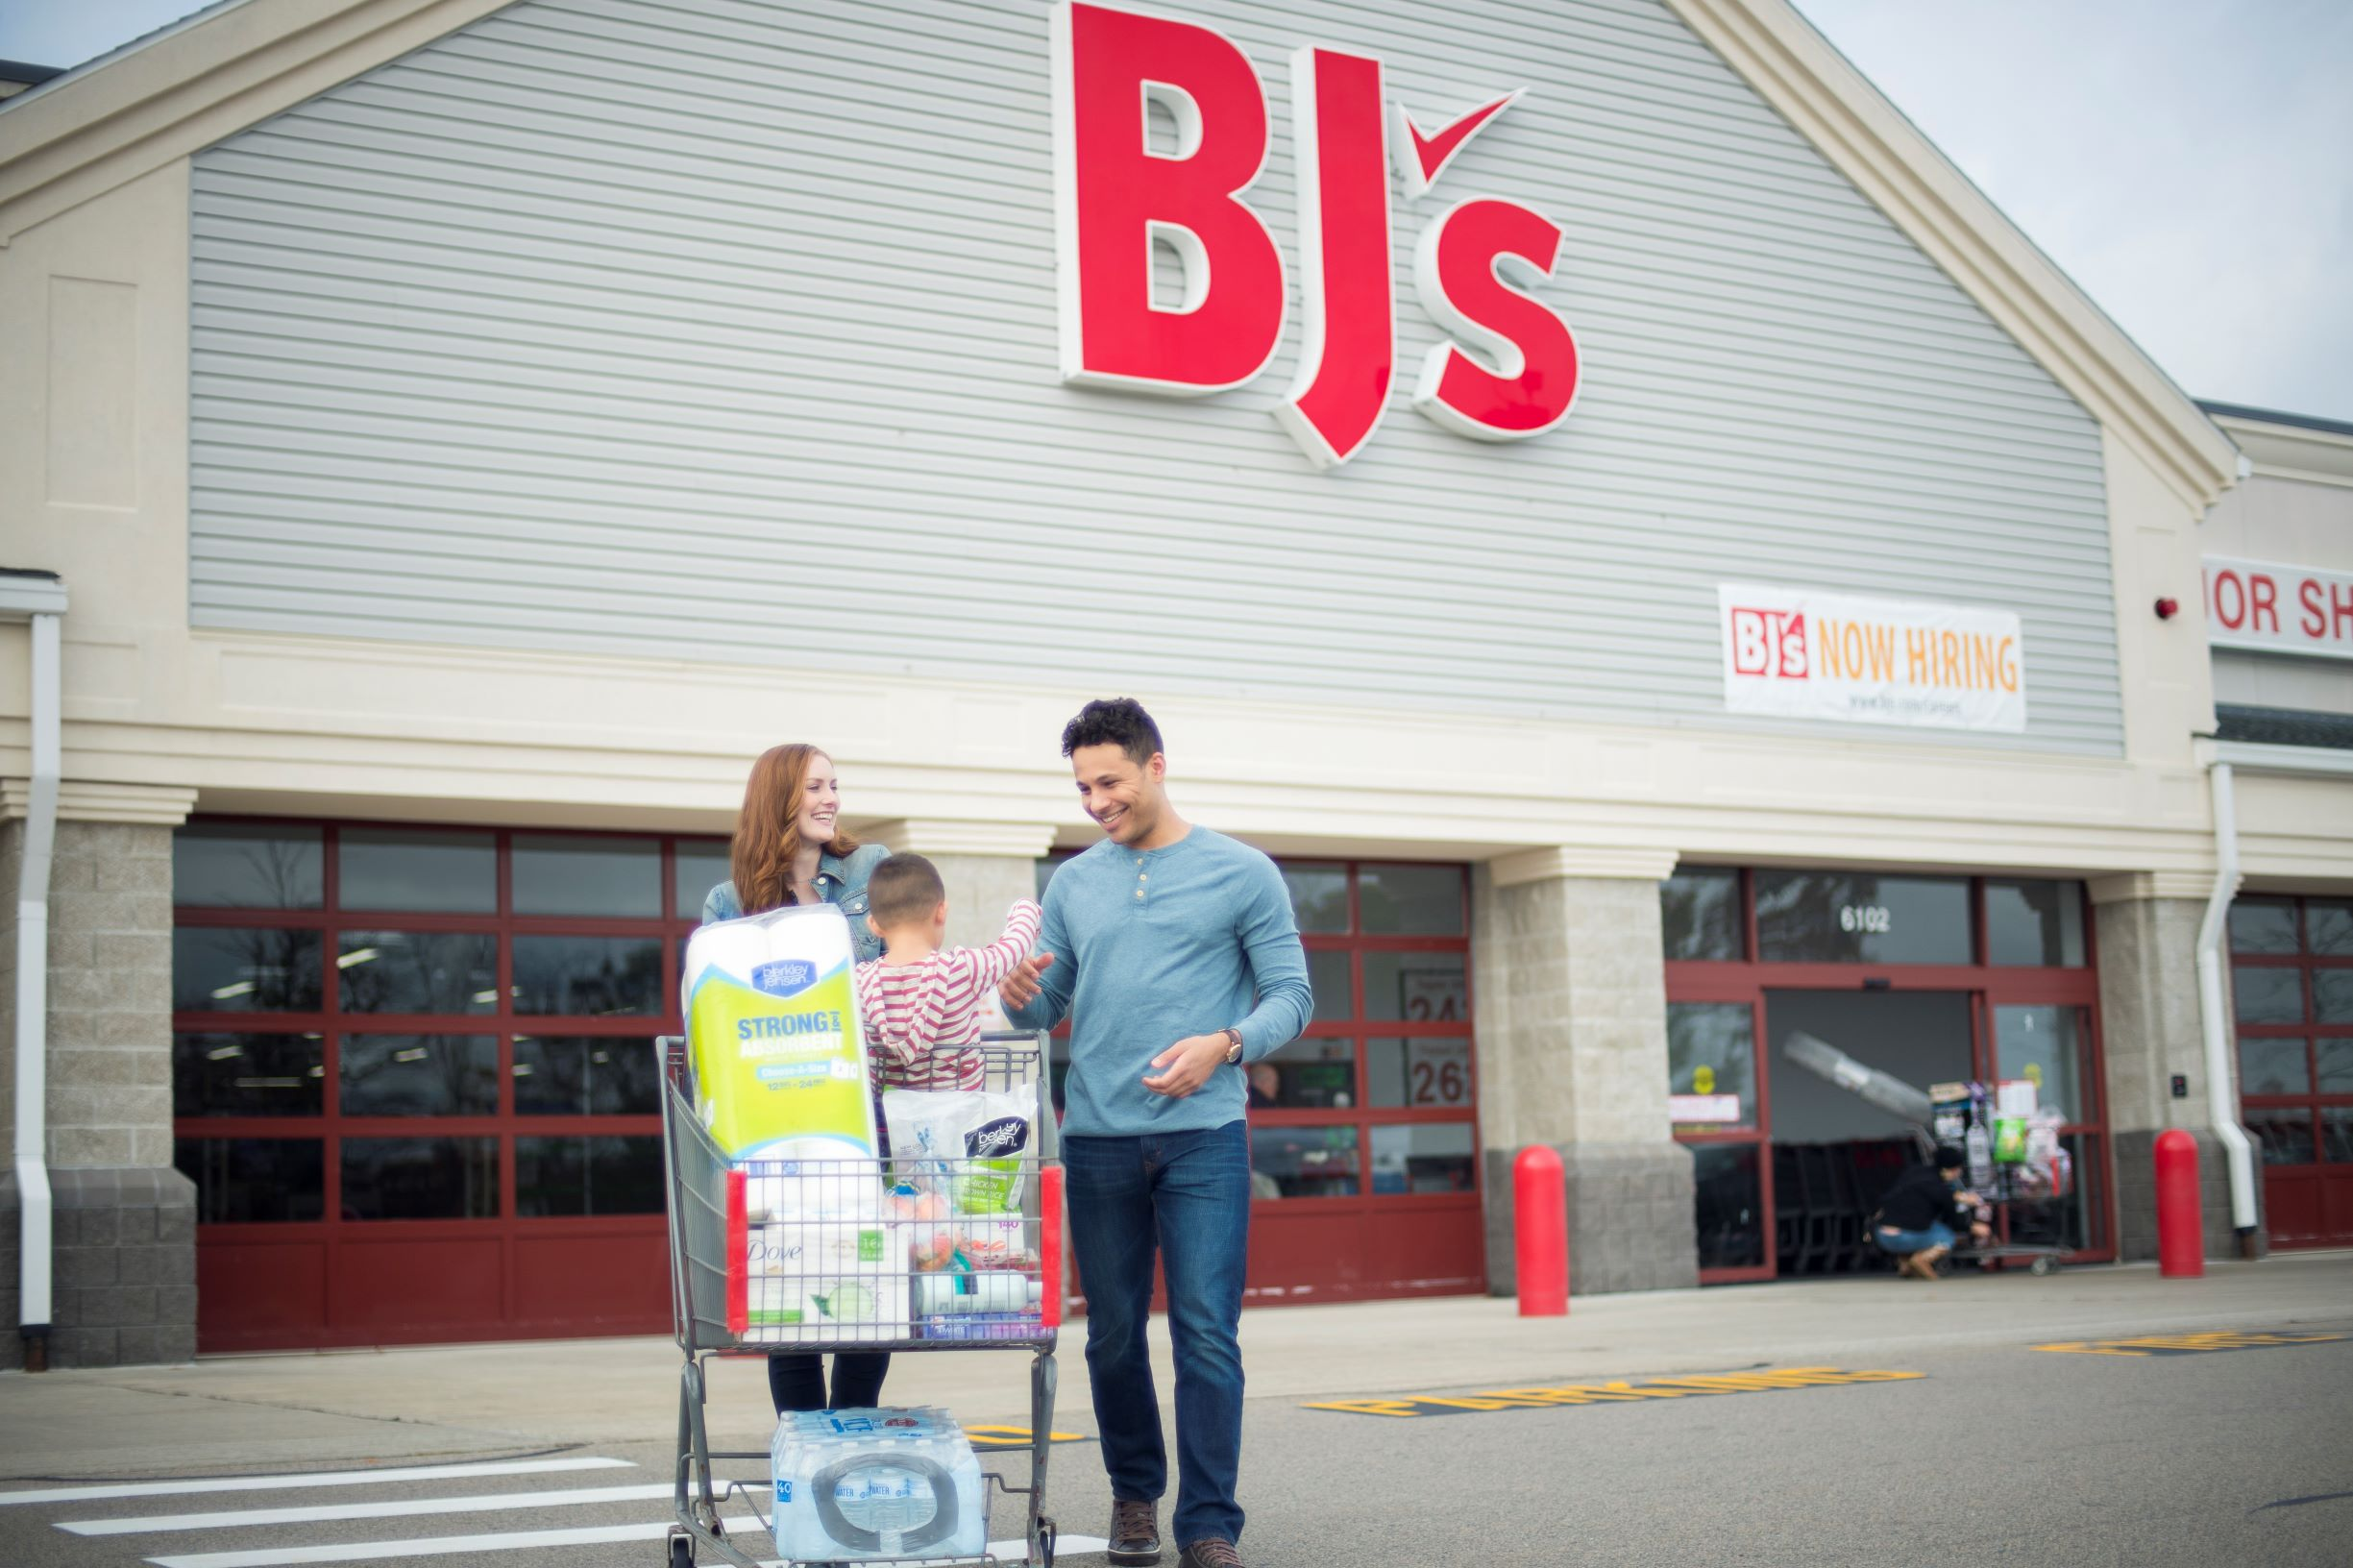 photograph about Bjs One Day Pass Printable referred to as BJs sees product sales uptick between steady transformation